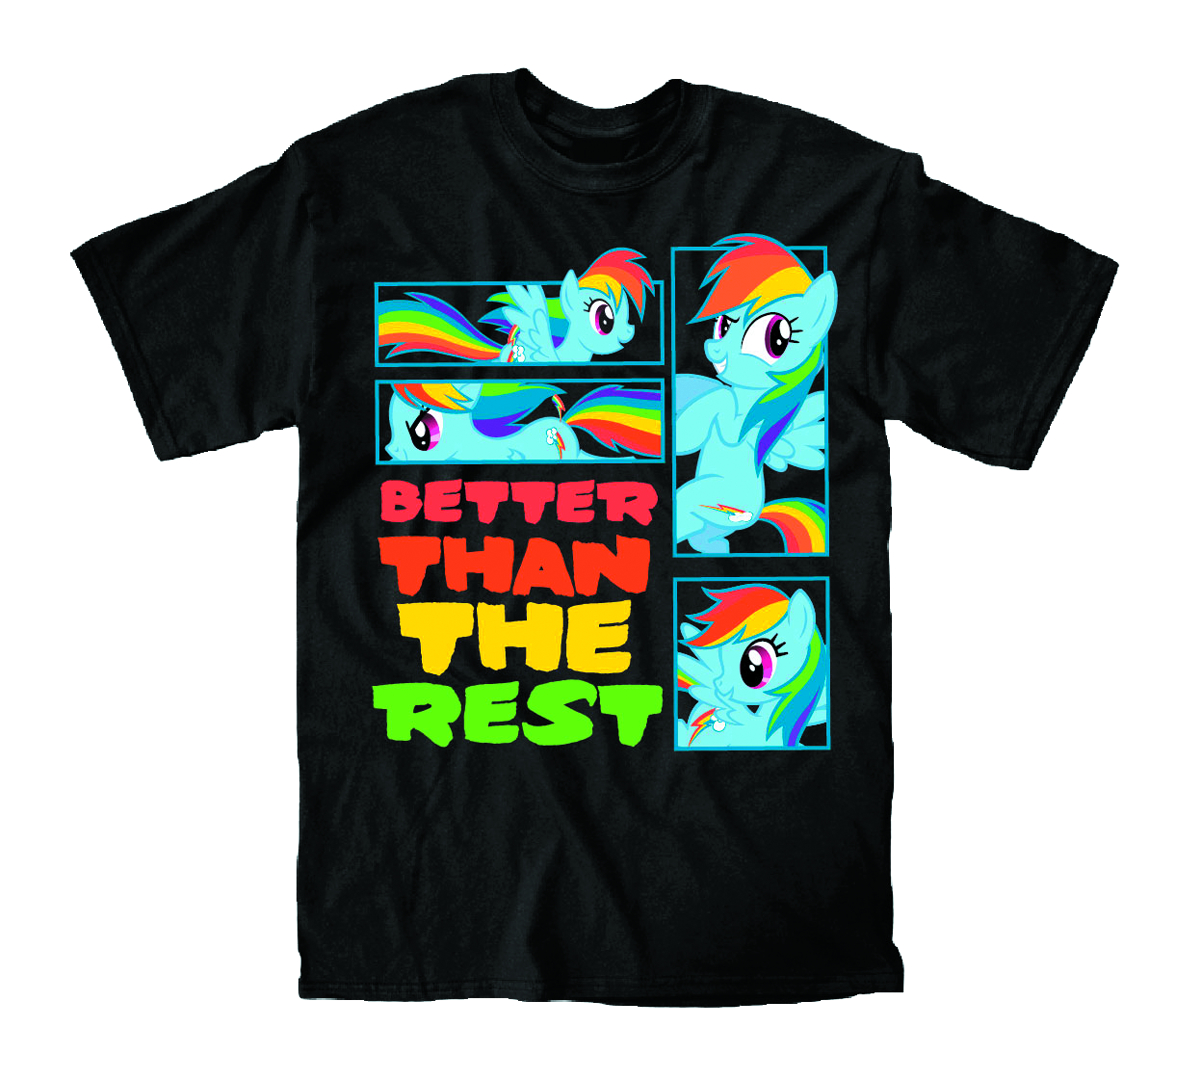 MY LITTLE PONY BETTER THAN THE REST BLK T/S LG